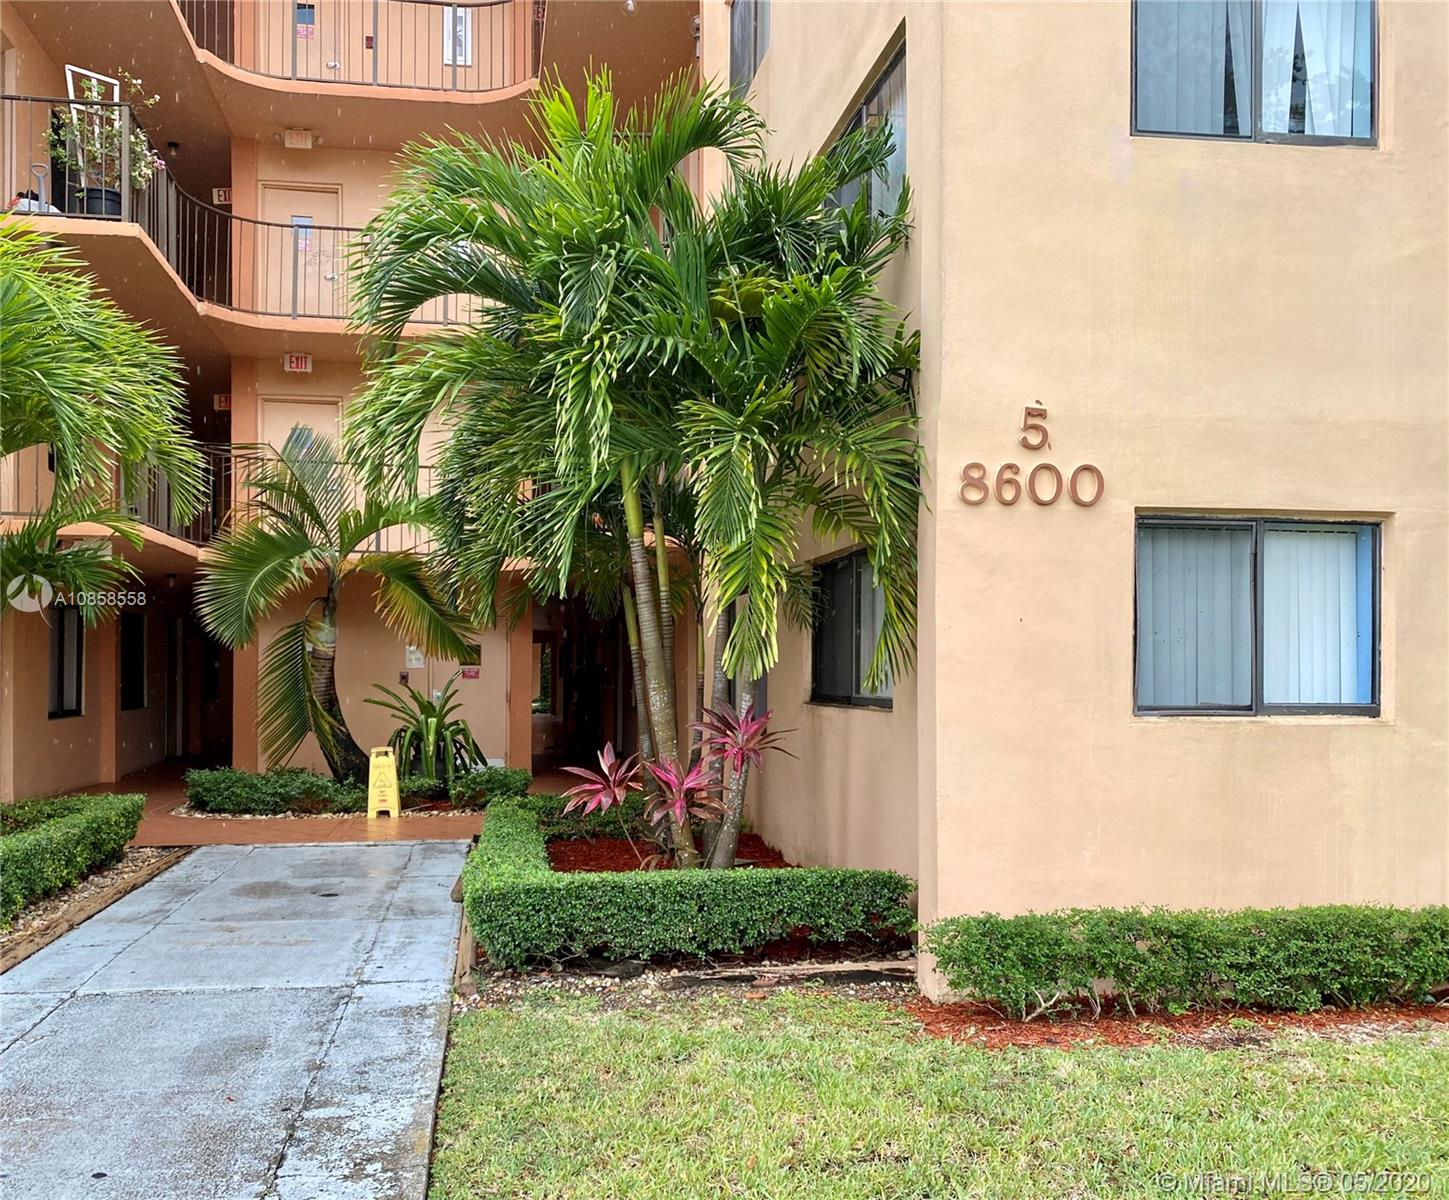 Fantastic opportunity to buy now! This spacious 2 bedroom 2 bathroom is located near major shopping  centers and just a few minutes from the turnpike.